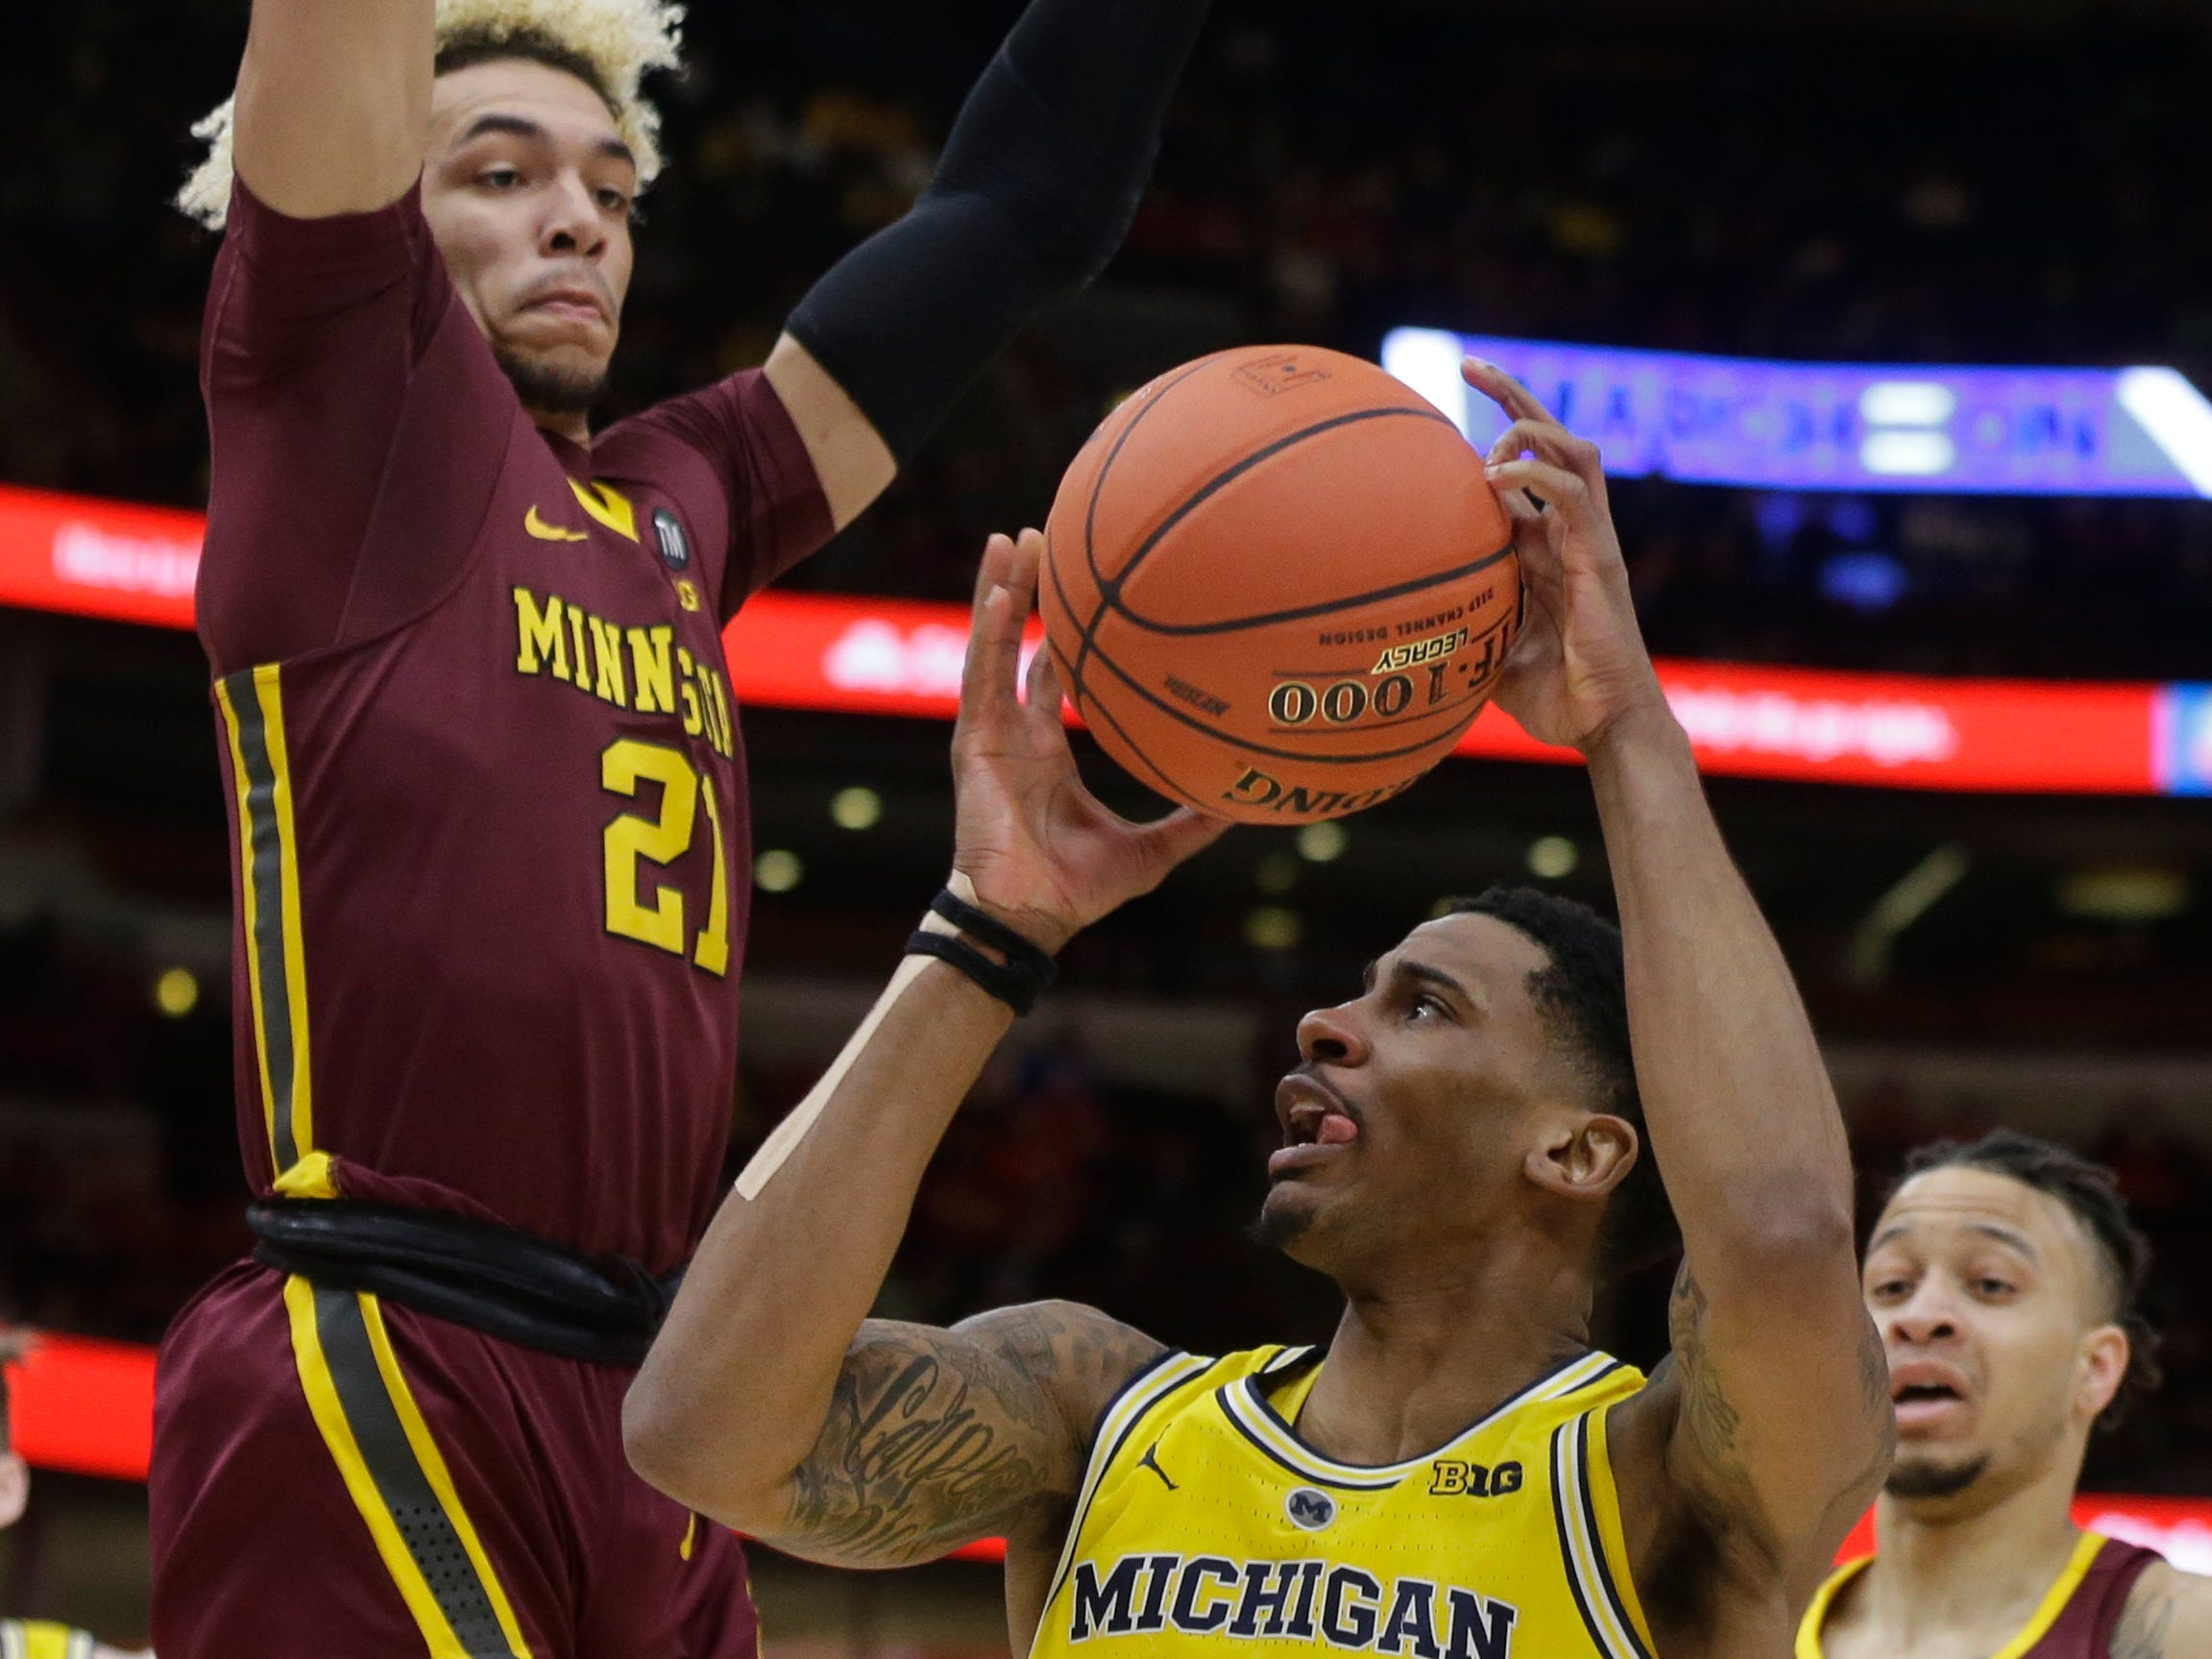 Michigan's Charles Matthews drives against Minnesota's Jarvis Omersa during the first half.